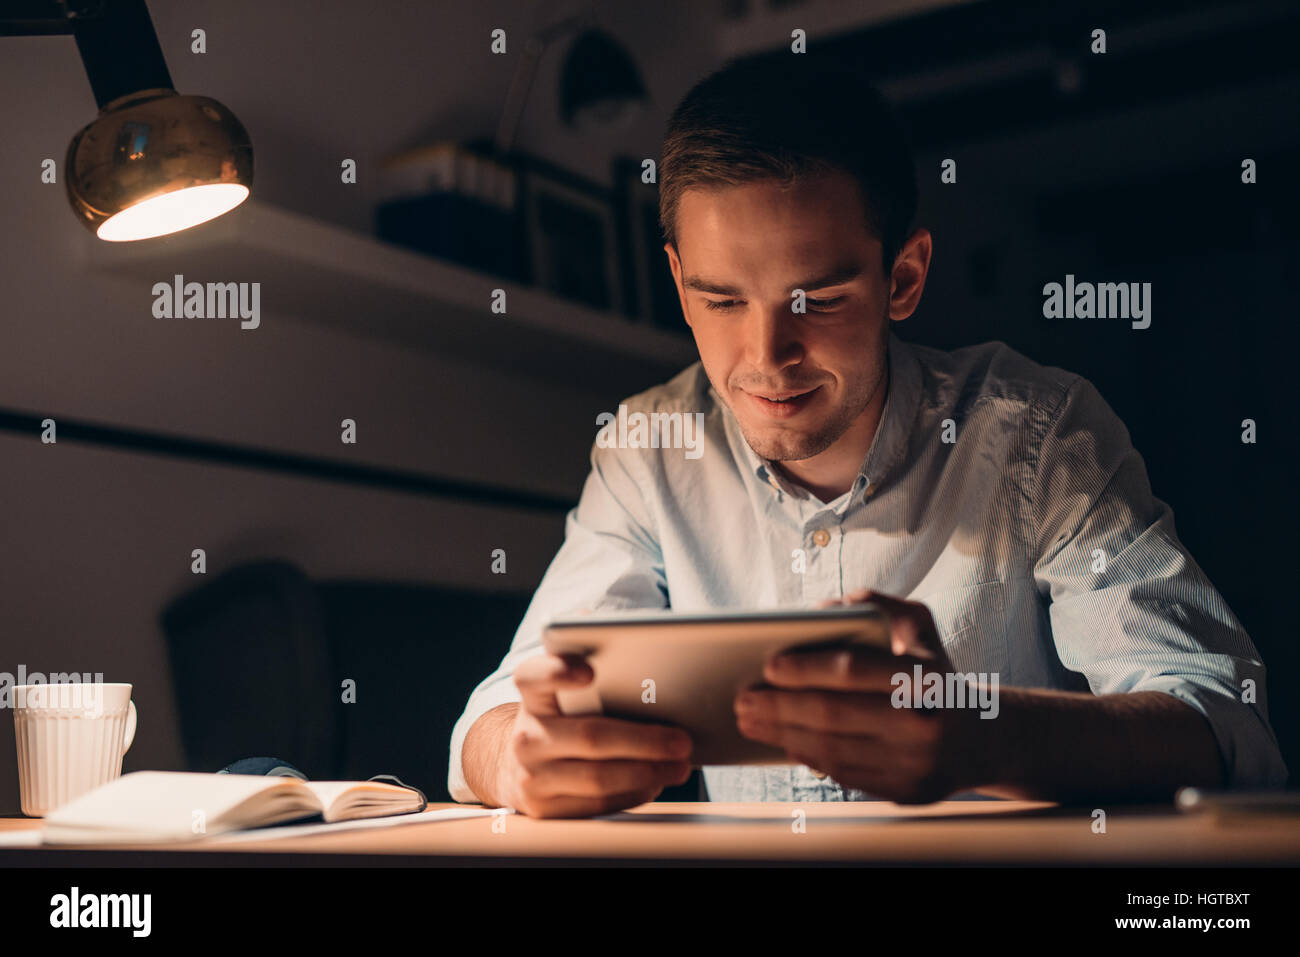 Young businessman working using a tablet late at night - Stock Image